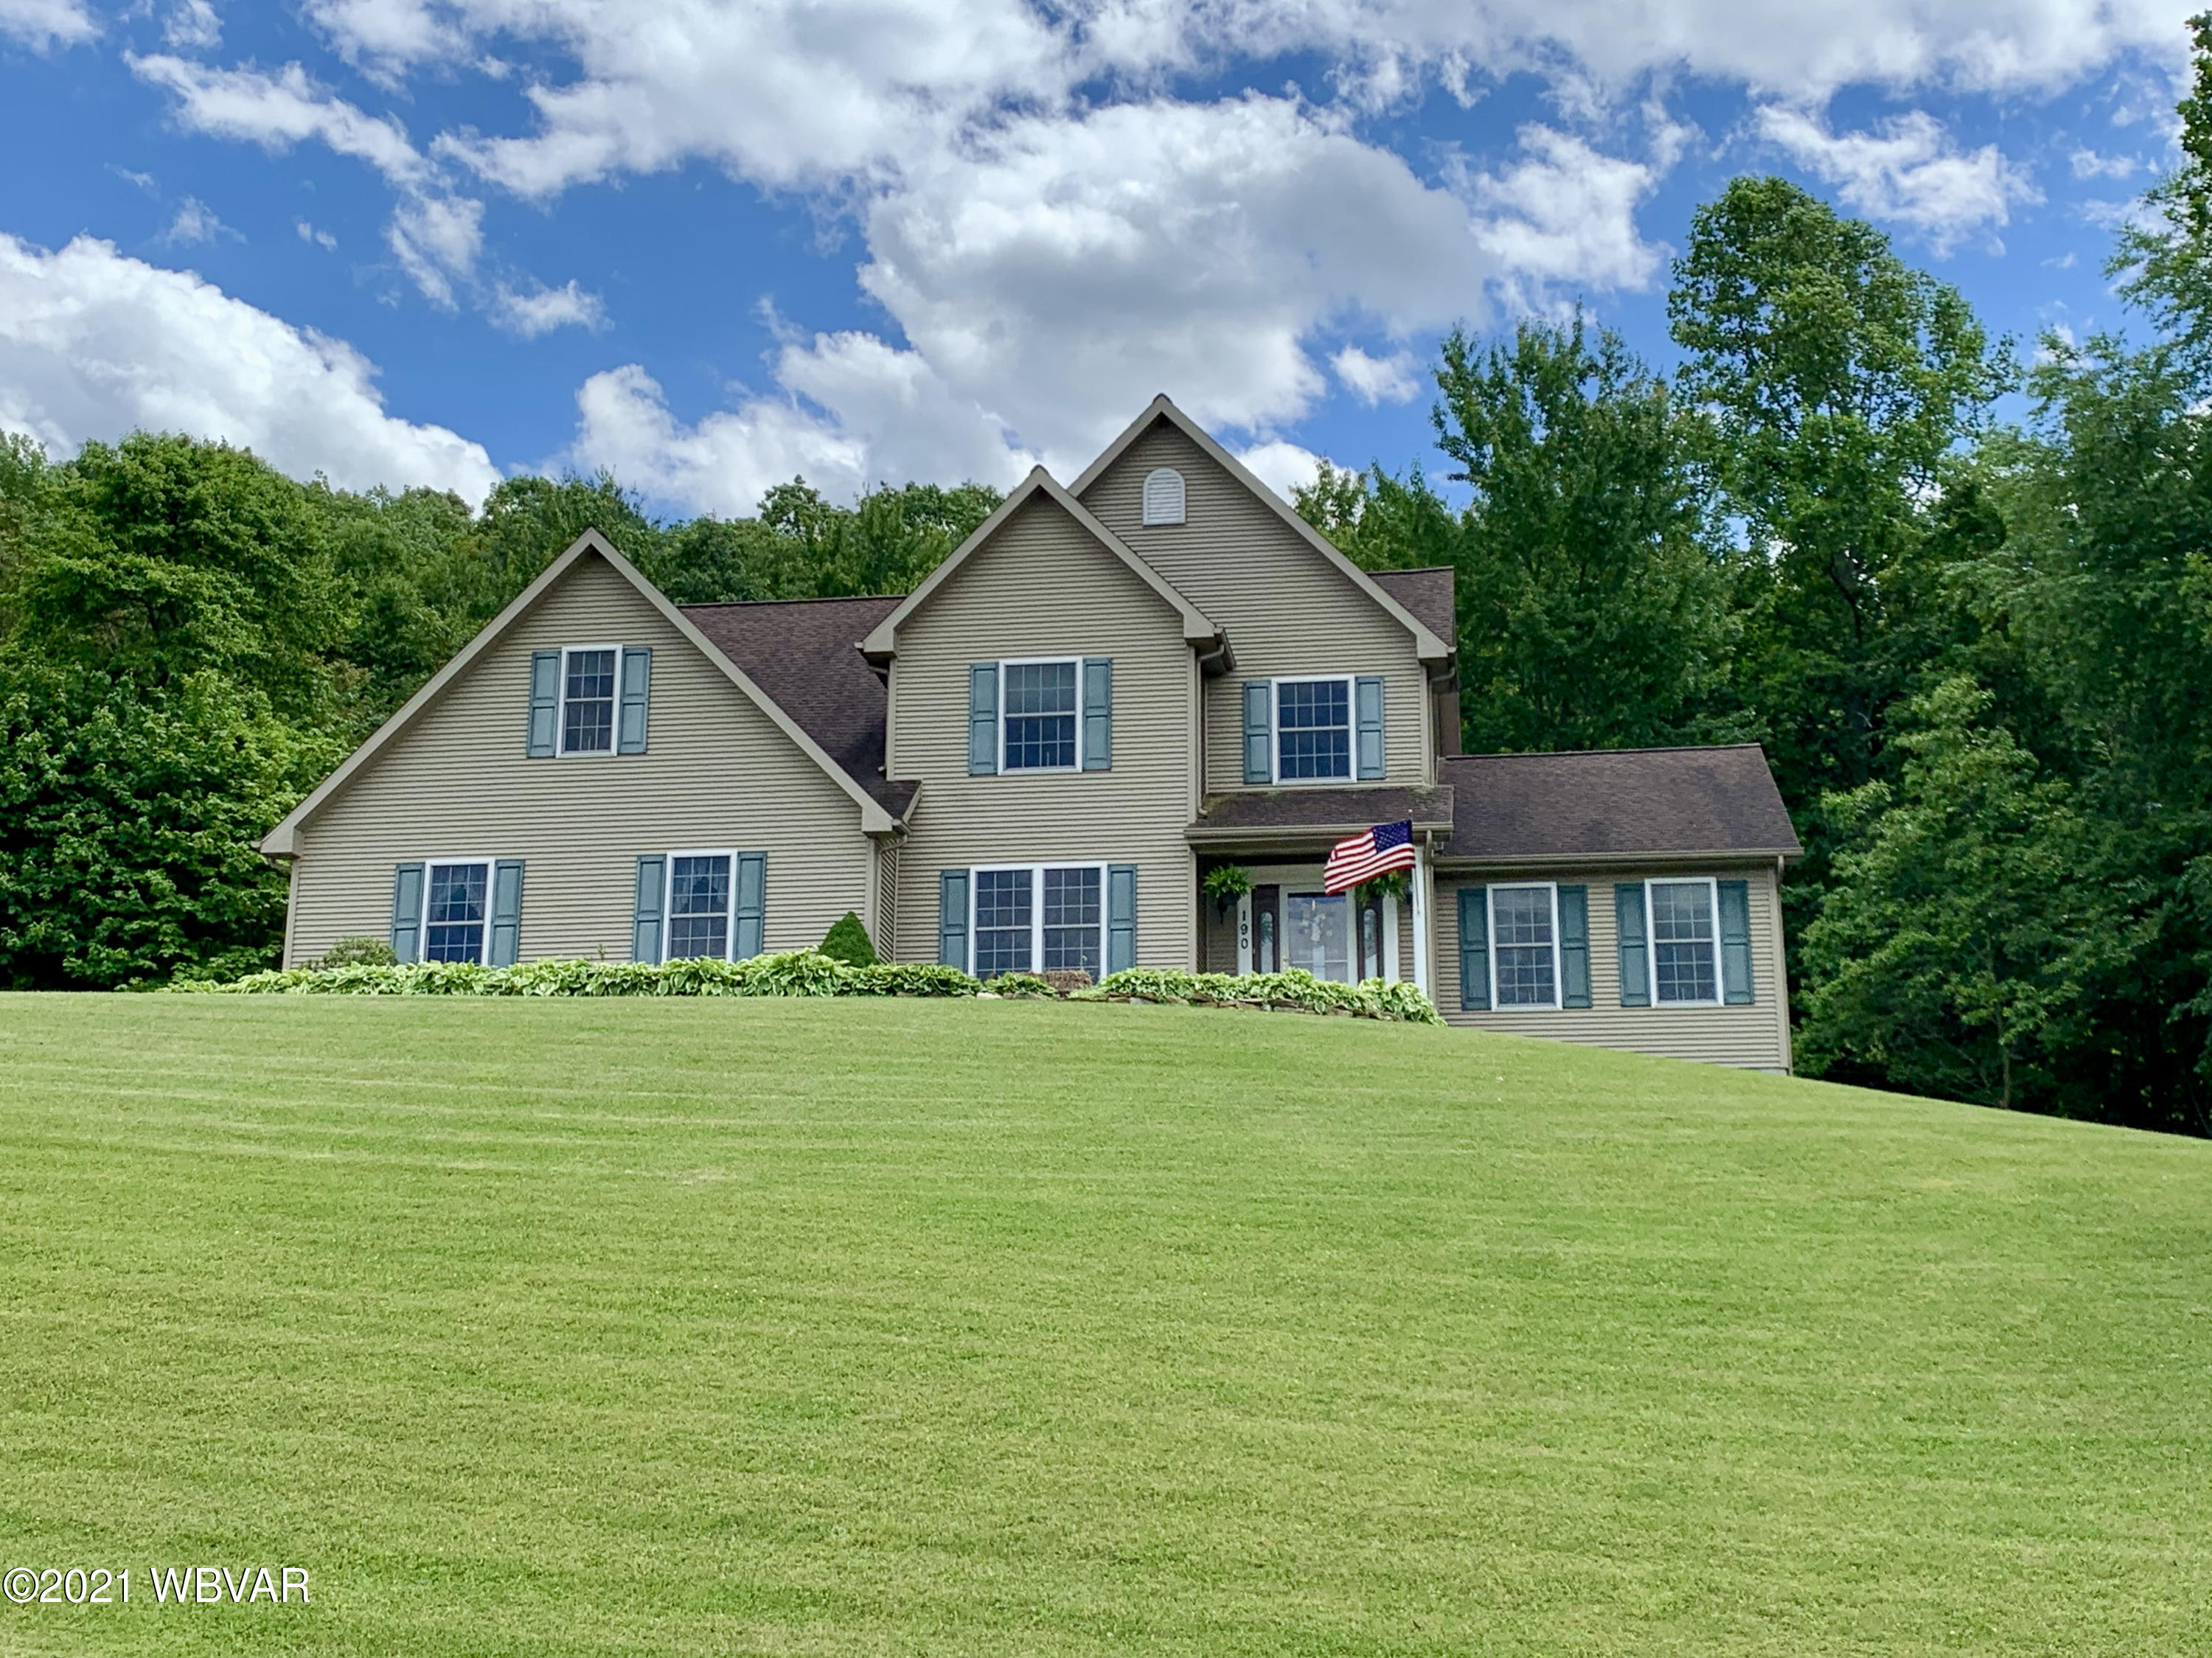 190 COCHISE TRAIL, Lock Haven, PA 17745, 4 Bedrooms Bedrooms, ,3 BathroomsBathrooms,Residential,For sale,COCHISE,WB-91790